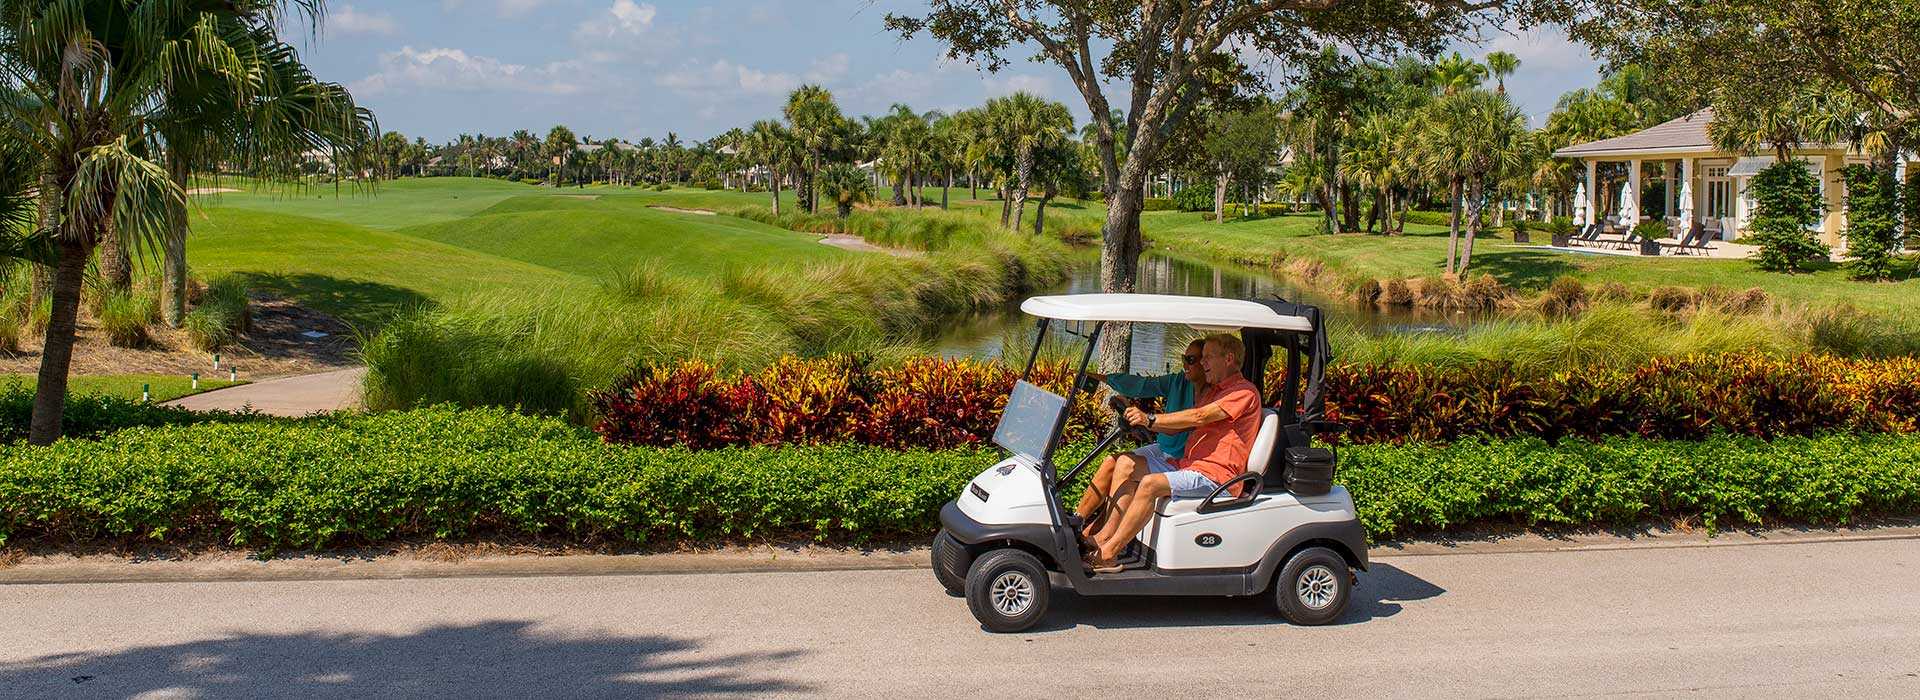 Couple riding in golf cart at Orchid Island Golf & Beach Club